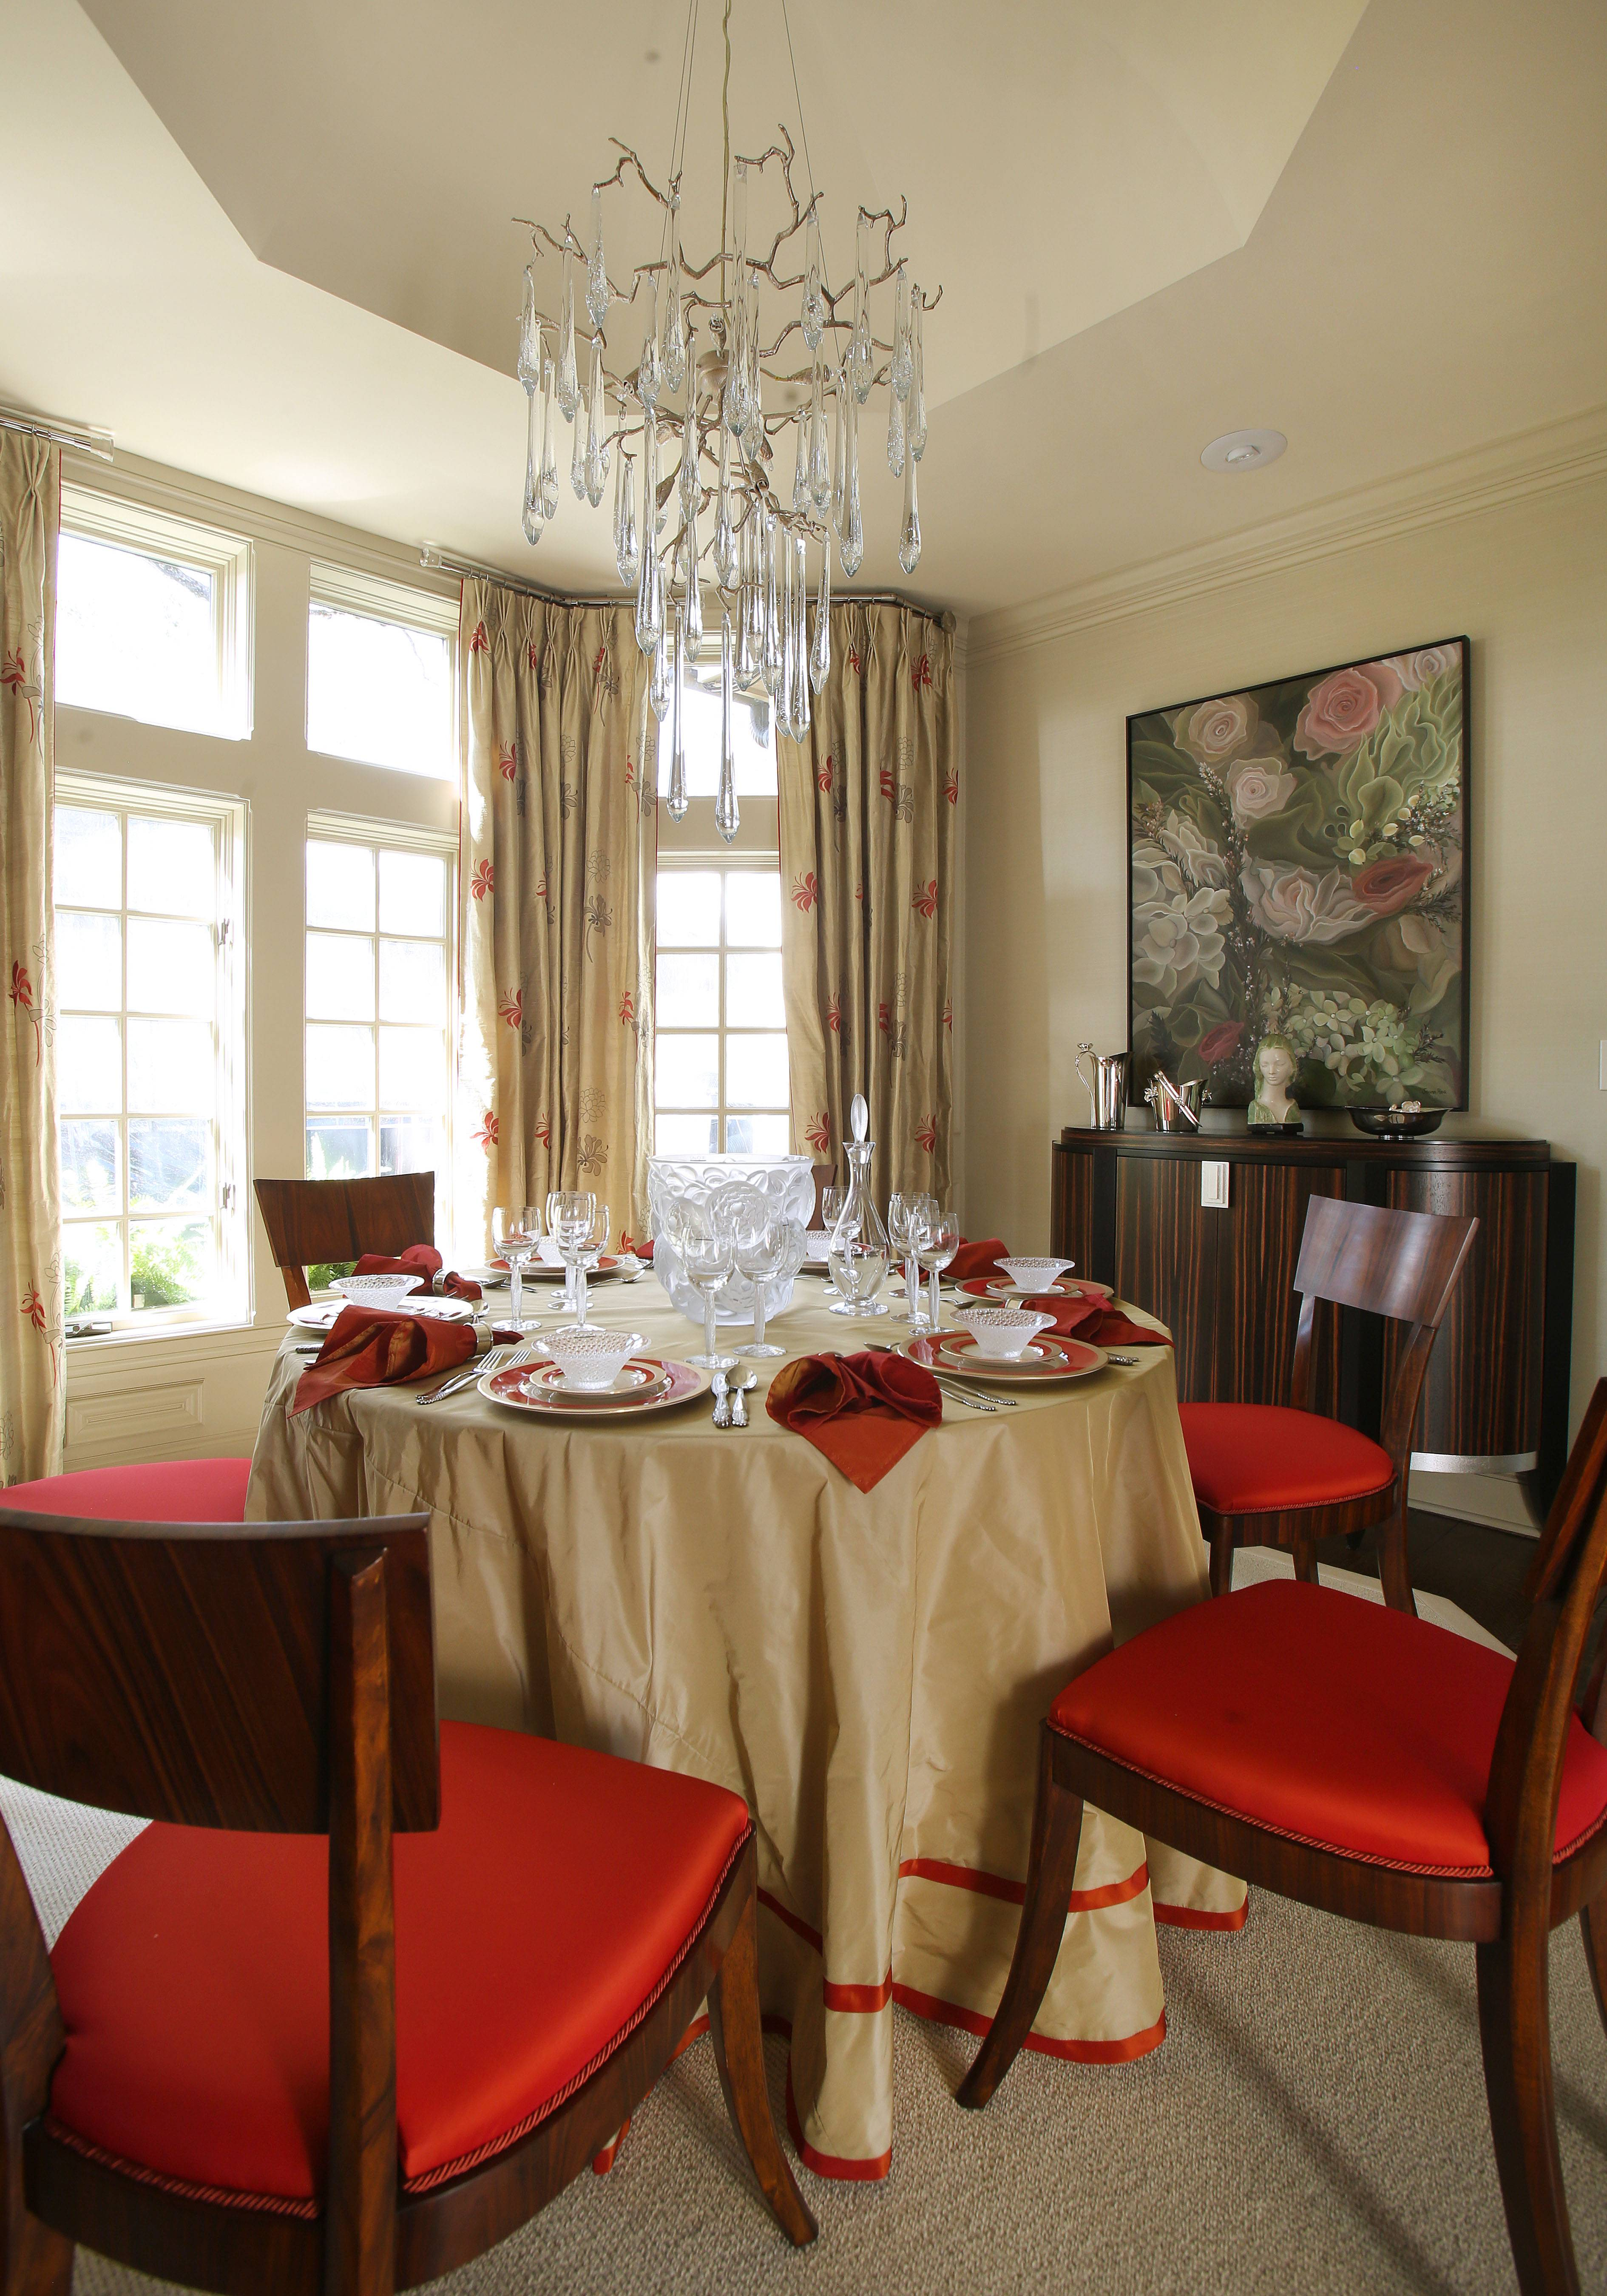 Lori Lennon's family dining room is welcoming, bright and colorful.